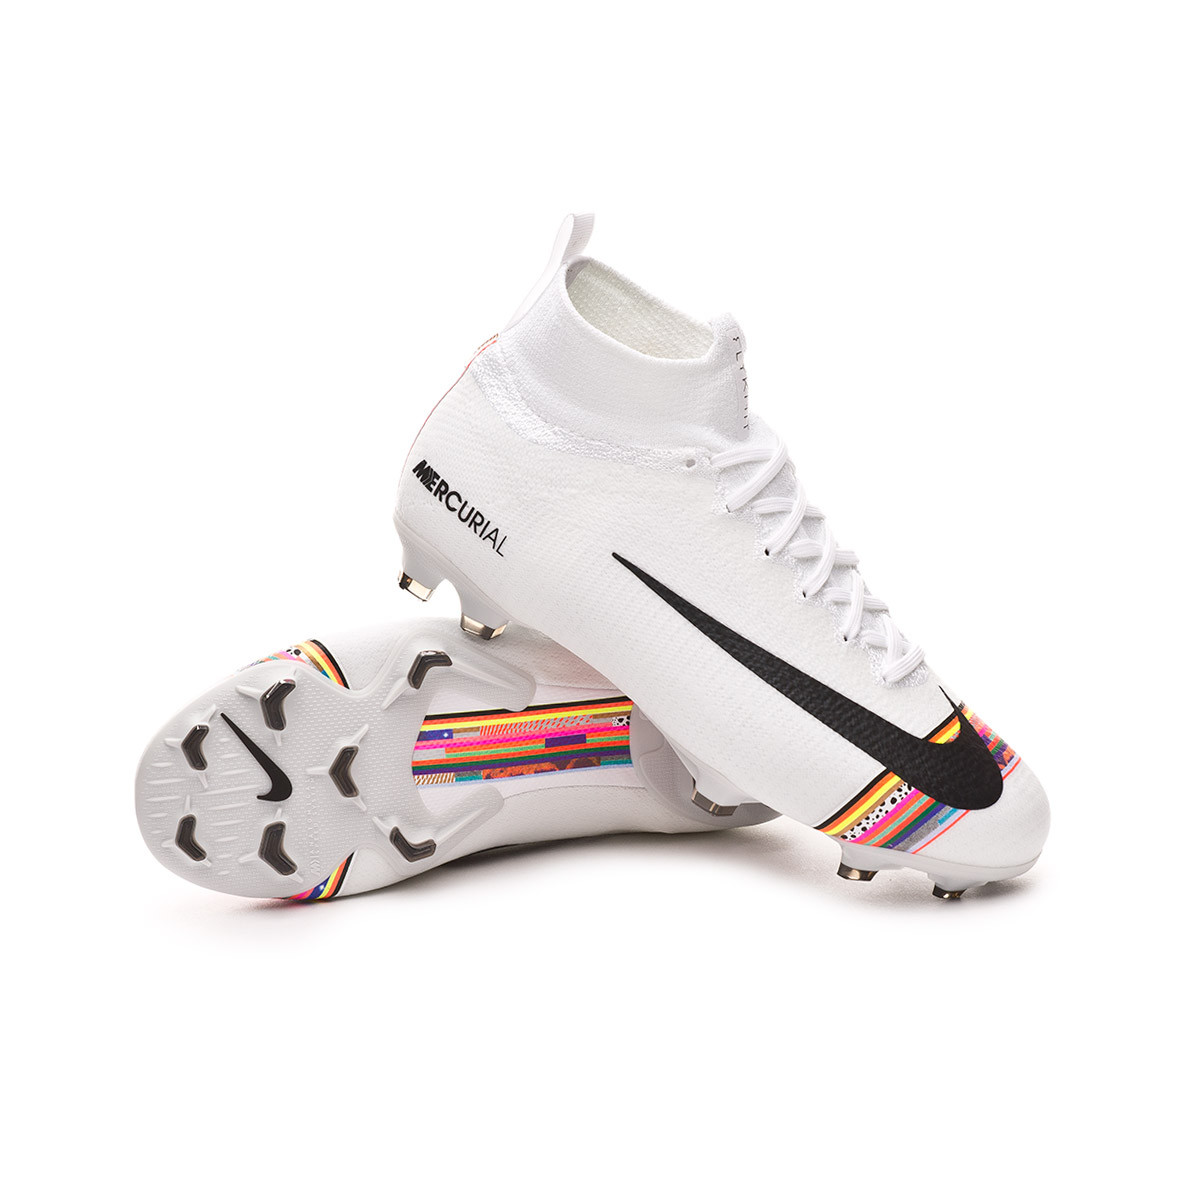 new concept df922 93275 Bota Mercurial Superfly VI Elite LVL UP FG Niño White-Black-Pure platinum